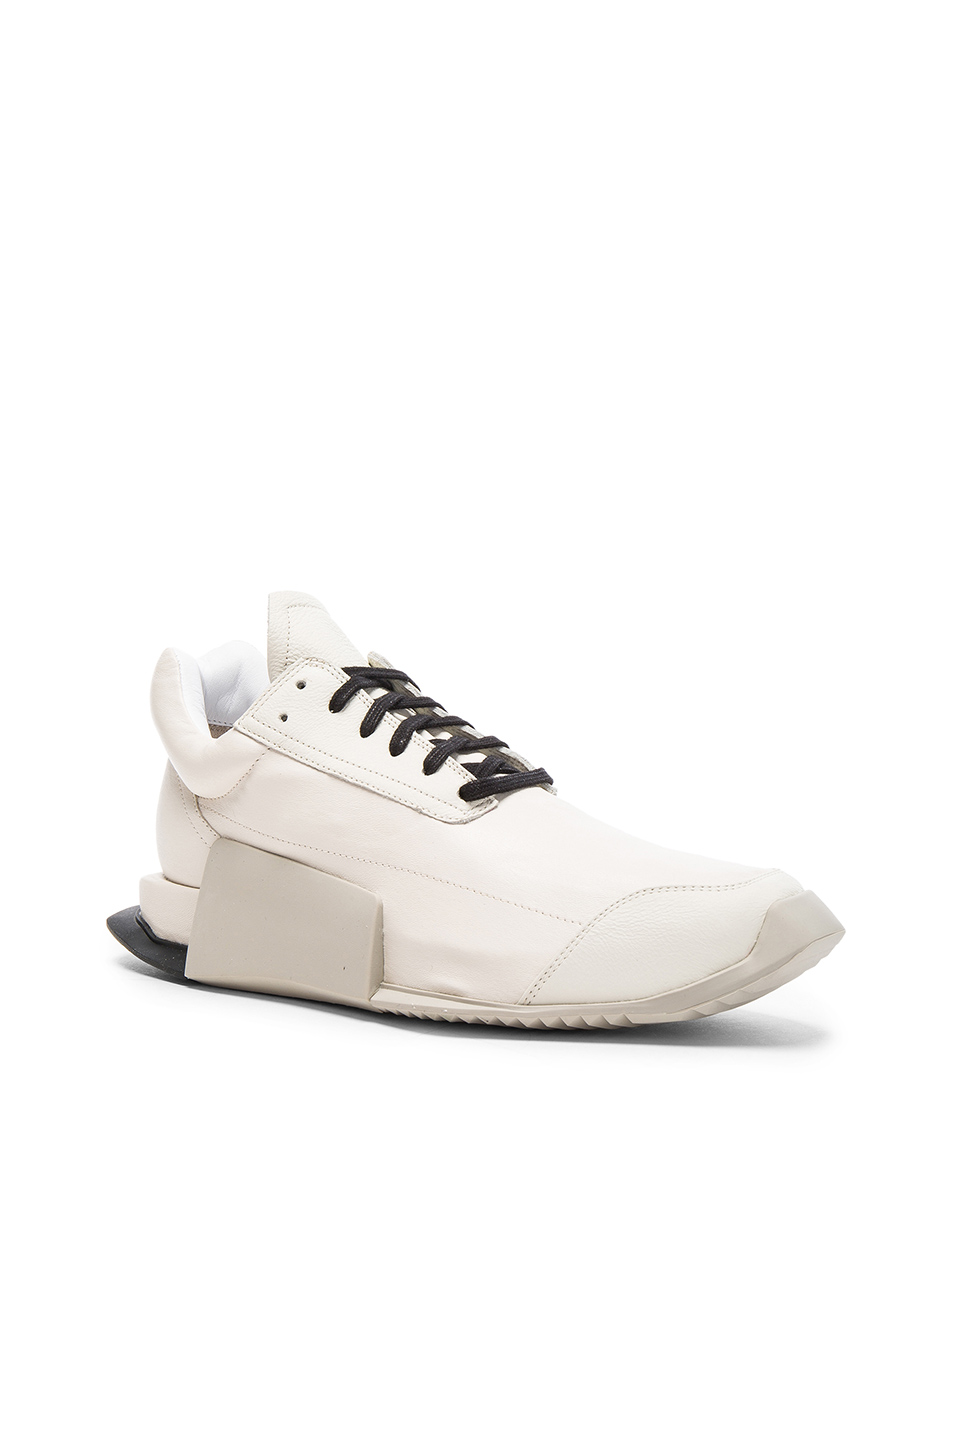 Photo of Rick Owens x Adidas Leather Level Runners in White - shop Rick Owens menswear